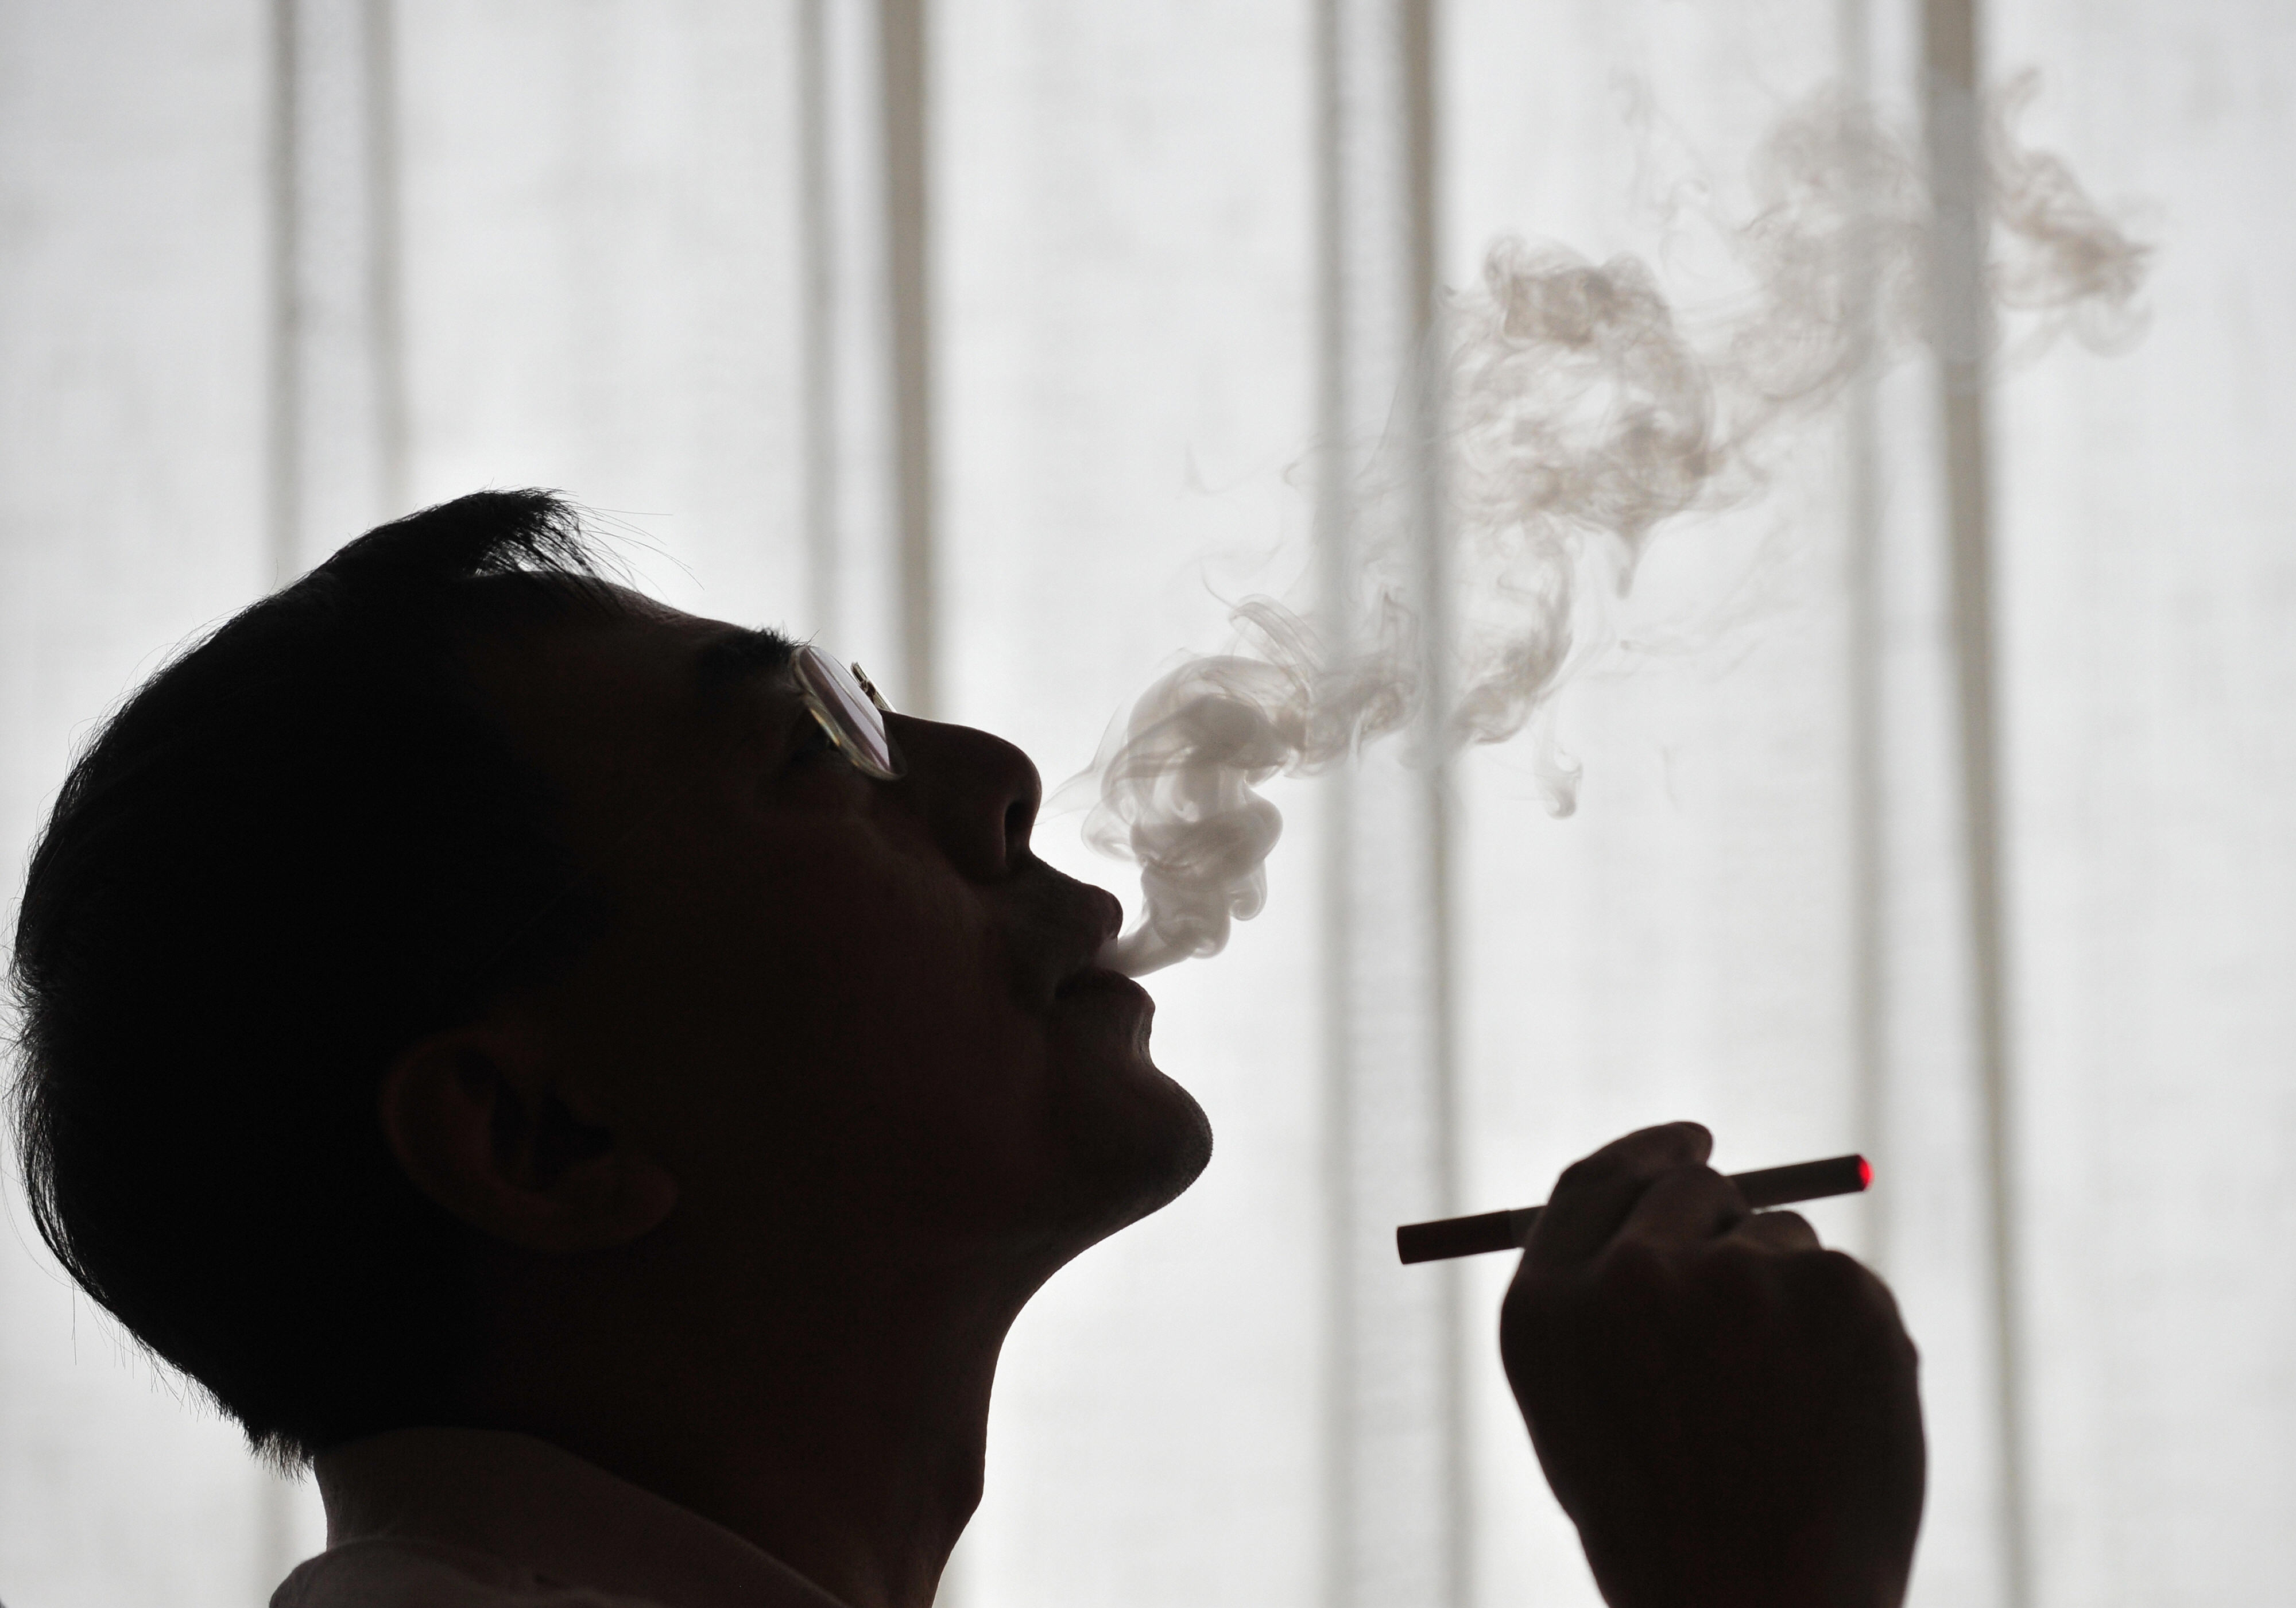 The inventor of the electronic cigarette, Hon Lik smokes his invention in Beiijng on May 25, 2009. Also known as an 'e-cigarette', the battery-powered device is designed as an alternative to cigarettes, cigars and pipes, and provides inhaled doses of nicotine by delivering a vaporized propylene glycol/nicotine solution, while also providing the physical sensation and flavors similar to inhaled tobacco smoke. With 350 million tobacco smokers nationwide, China will join the world in observing World No Tobacco Day on May 31. AFP PHOTO/Frederic J. BROWN (Photo credit should read FREDERIC J. BROWN/AFP/Getty Images)